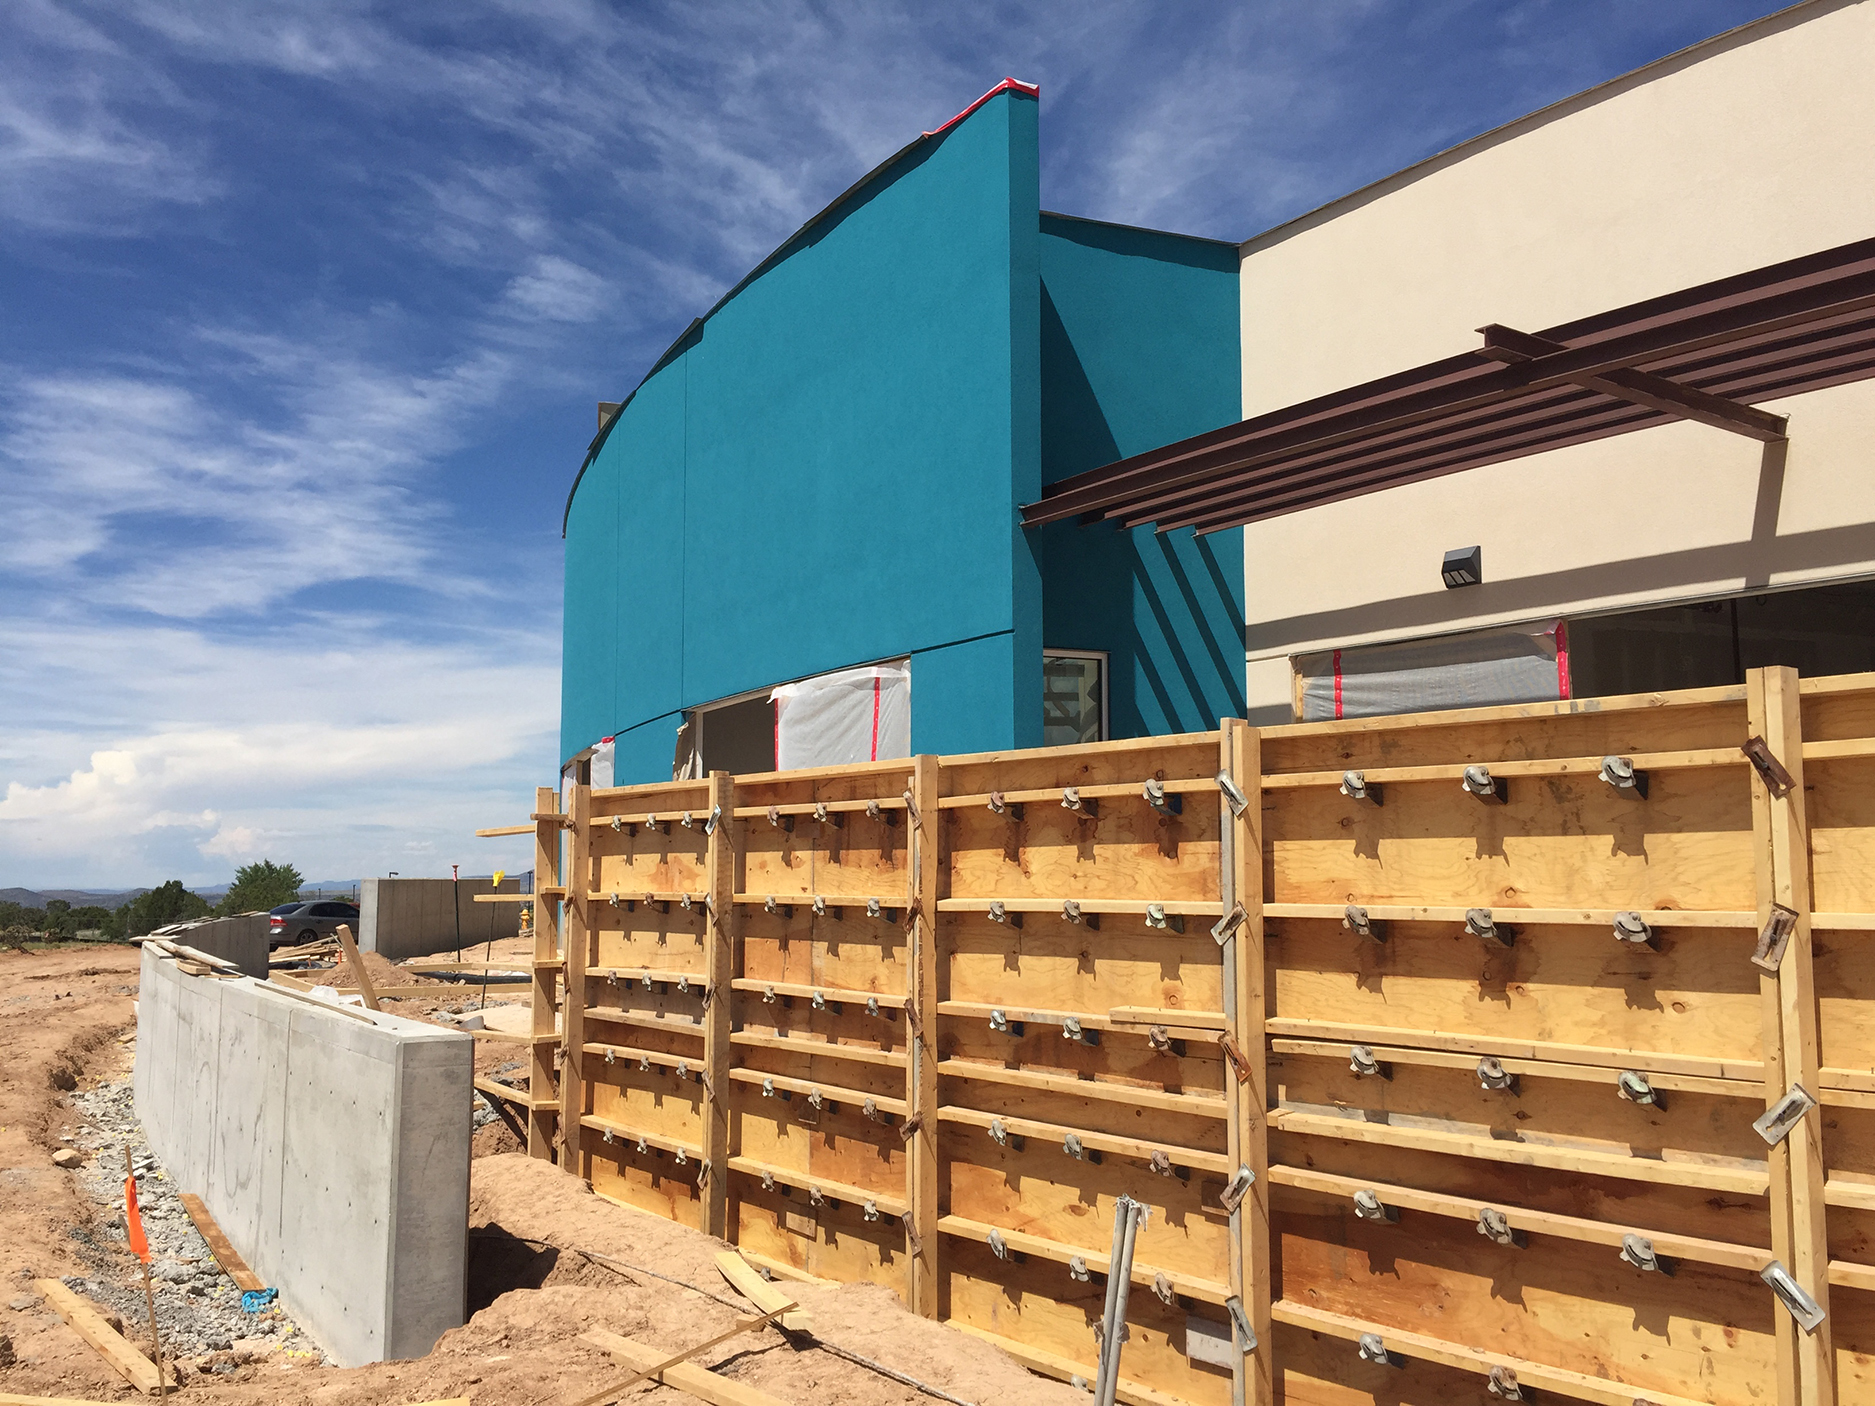 IAIA Multipurpose Center Construction